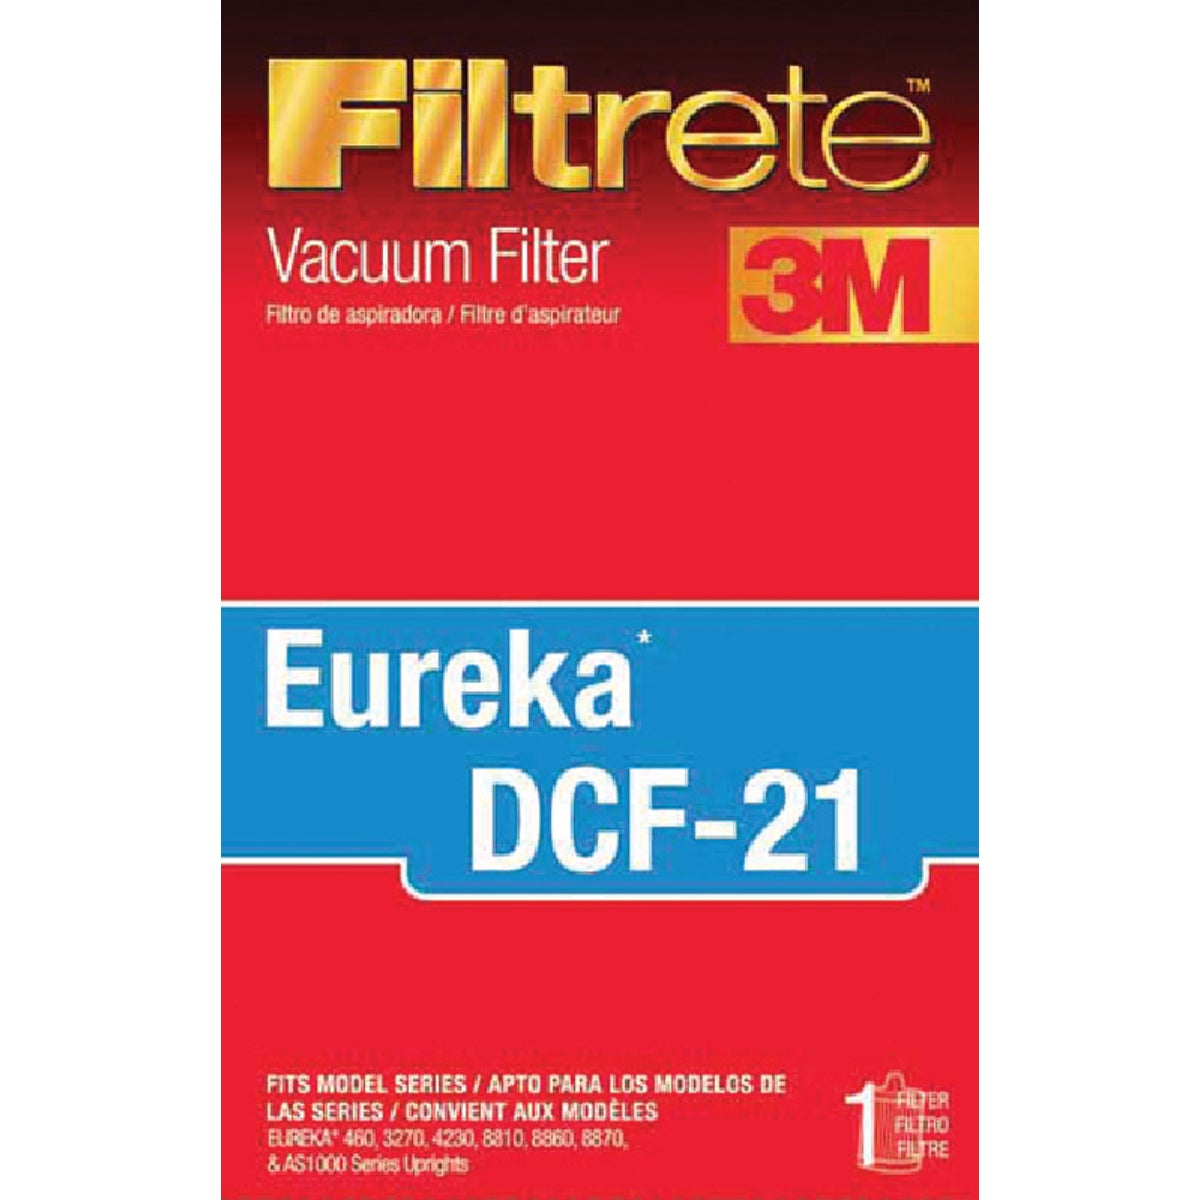 EUREKA DCF-21 FILTER - 67821A-2 by Electrolux Home Care